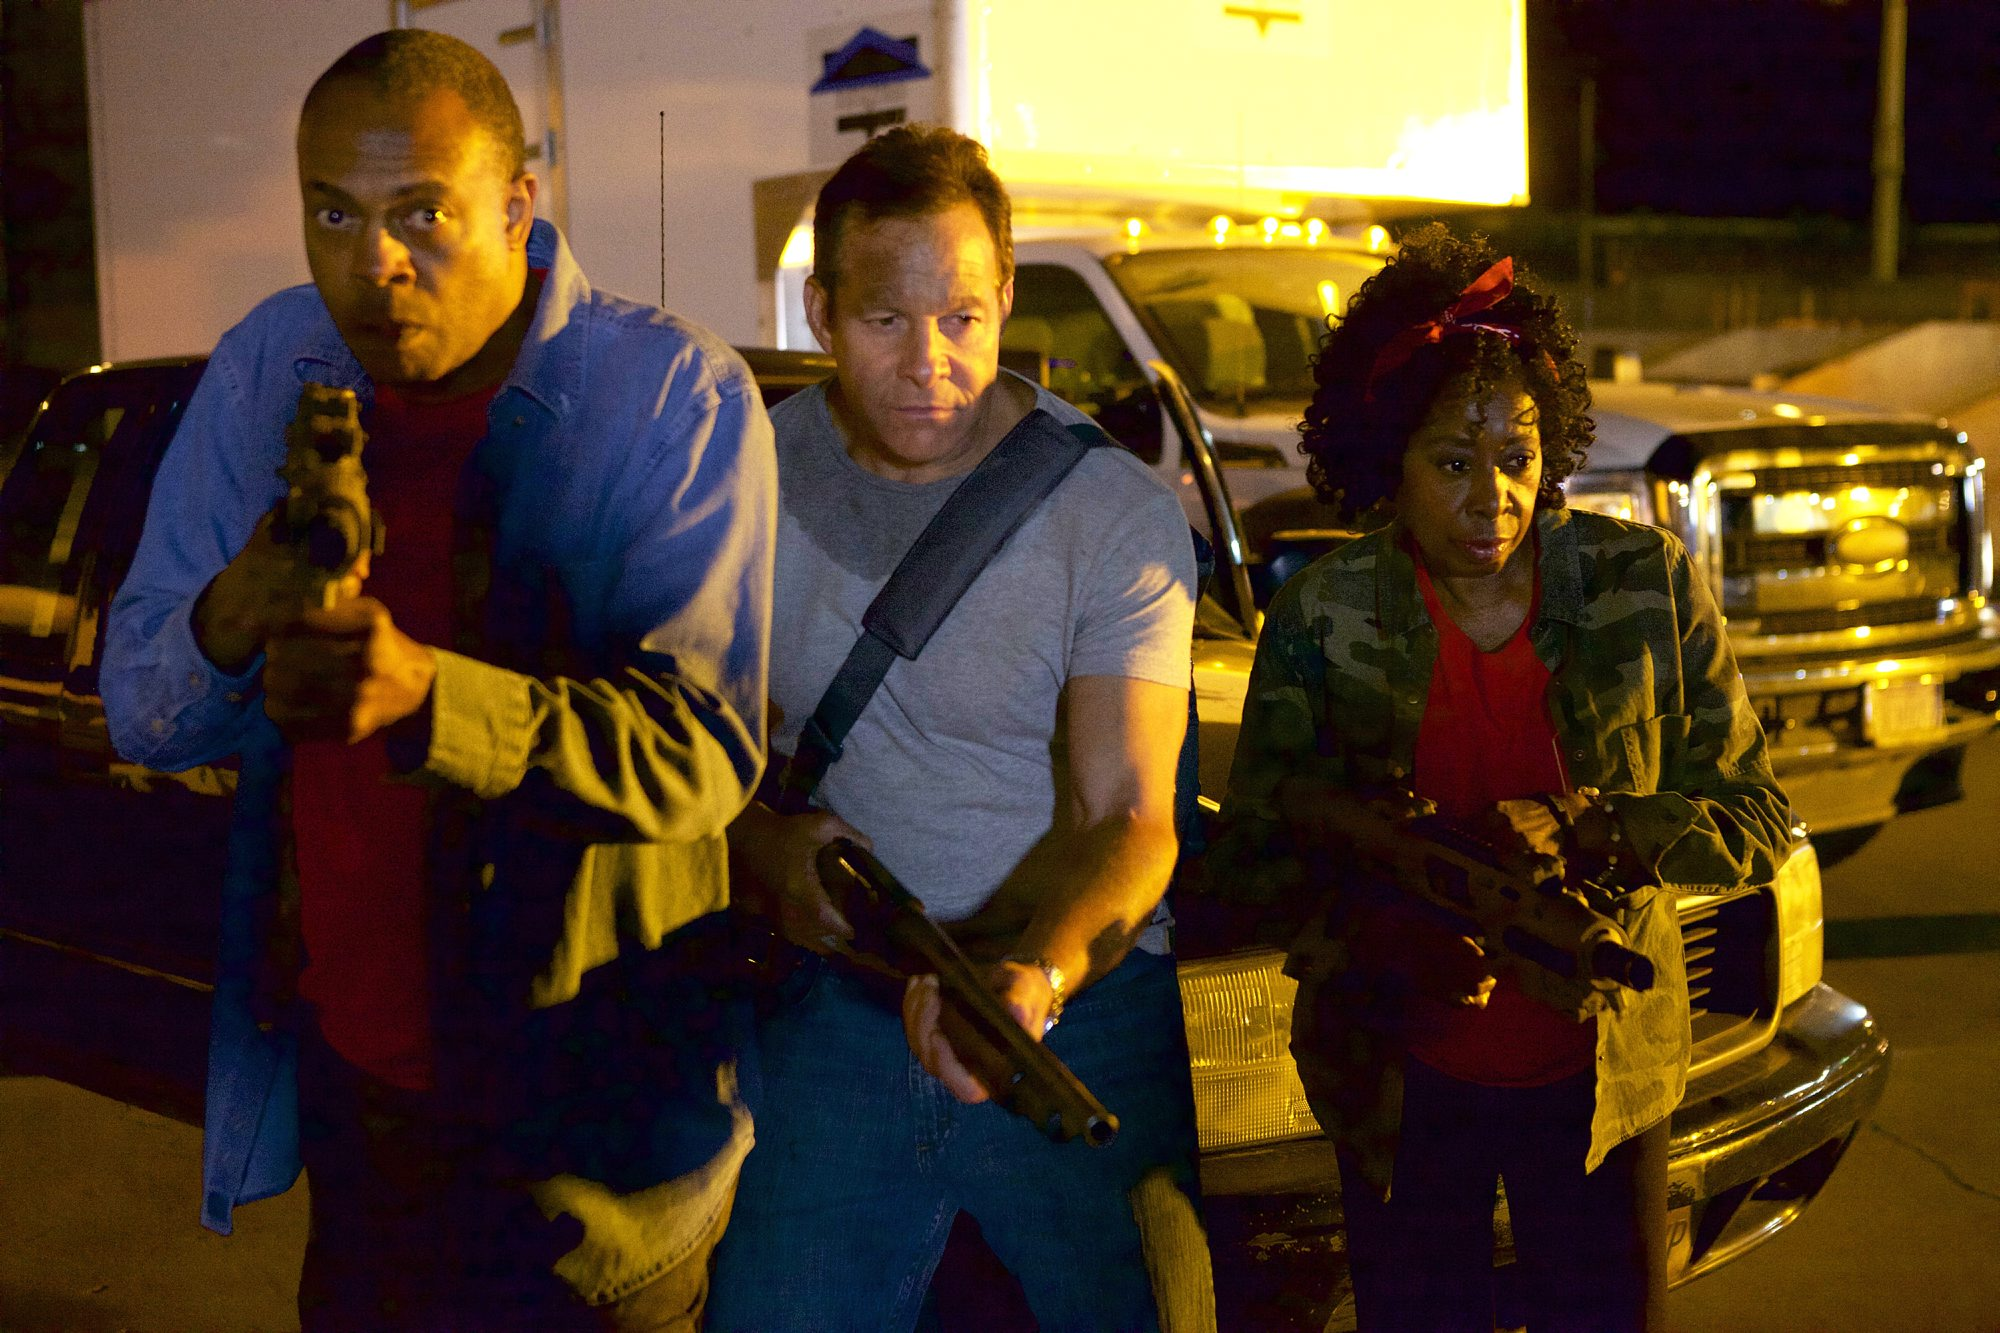 """Michael Winslow, left, Steve Guttenberg and Marion Ramsey star in """"Lavalantula,"""" premiering next Saturday on Syfy."""